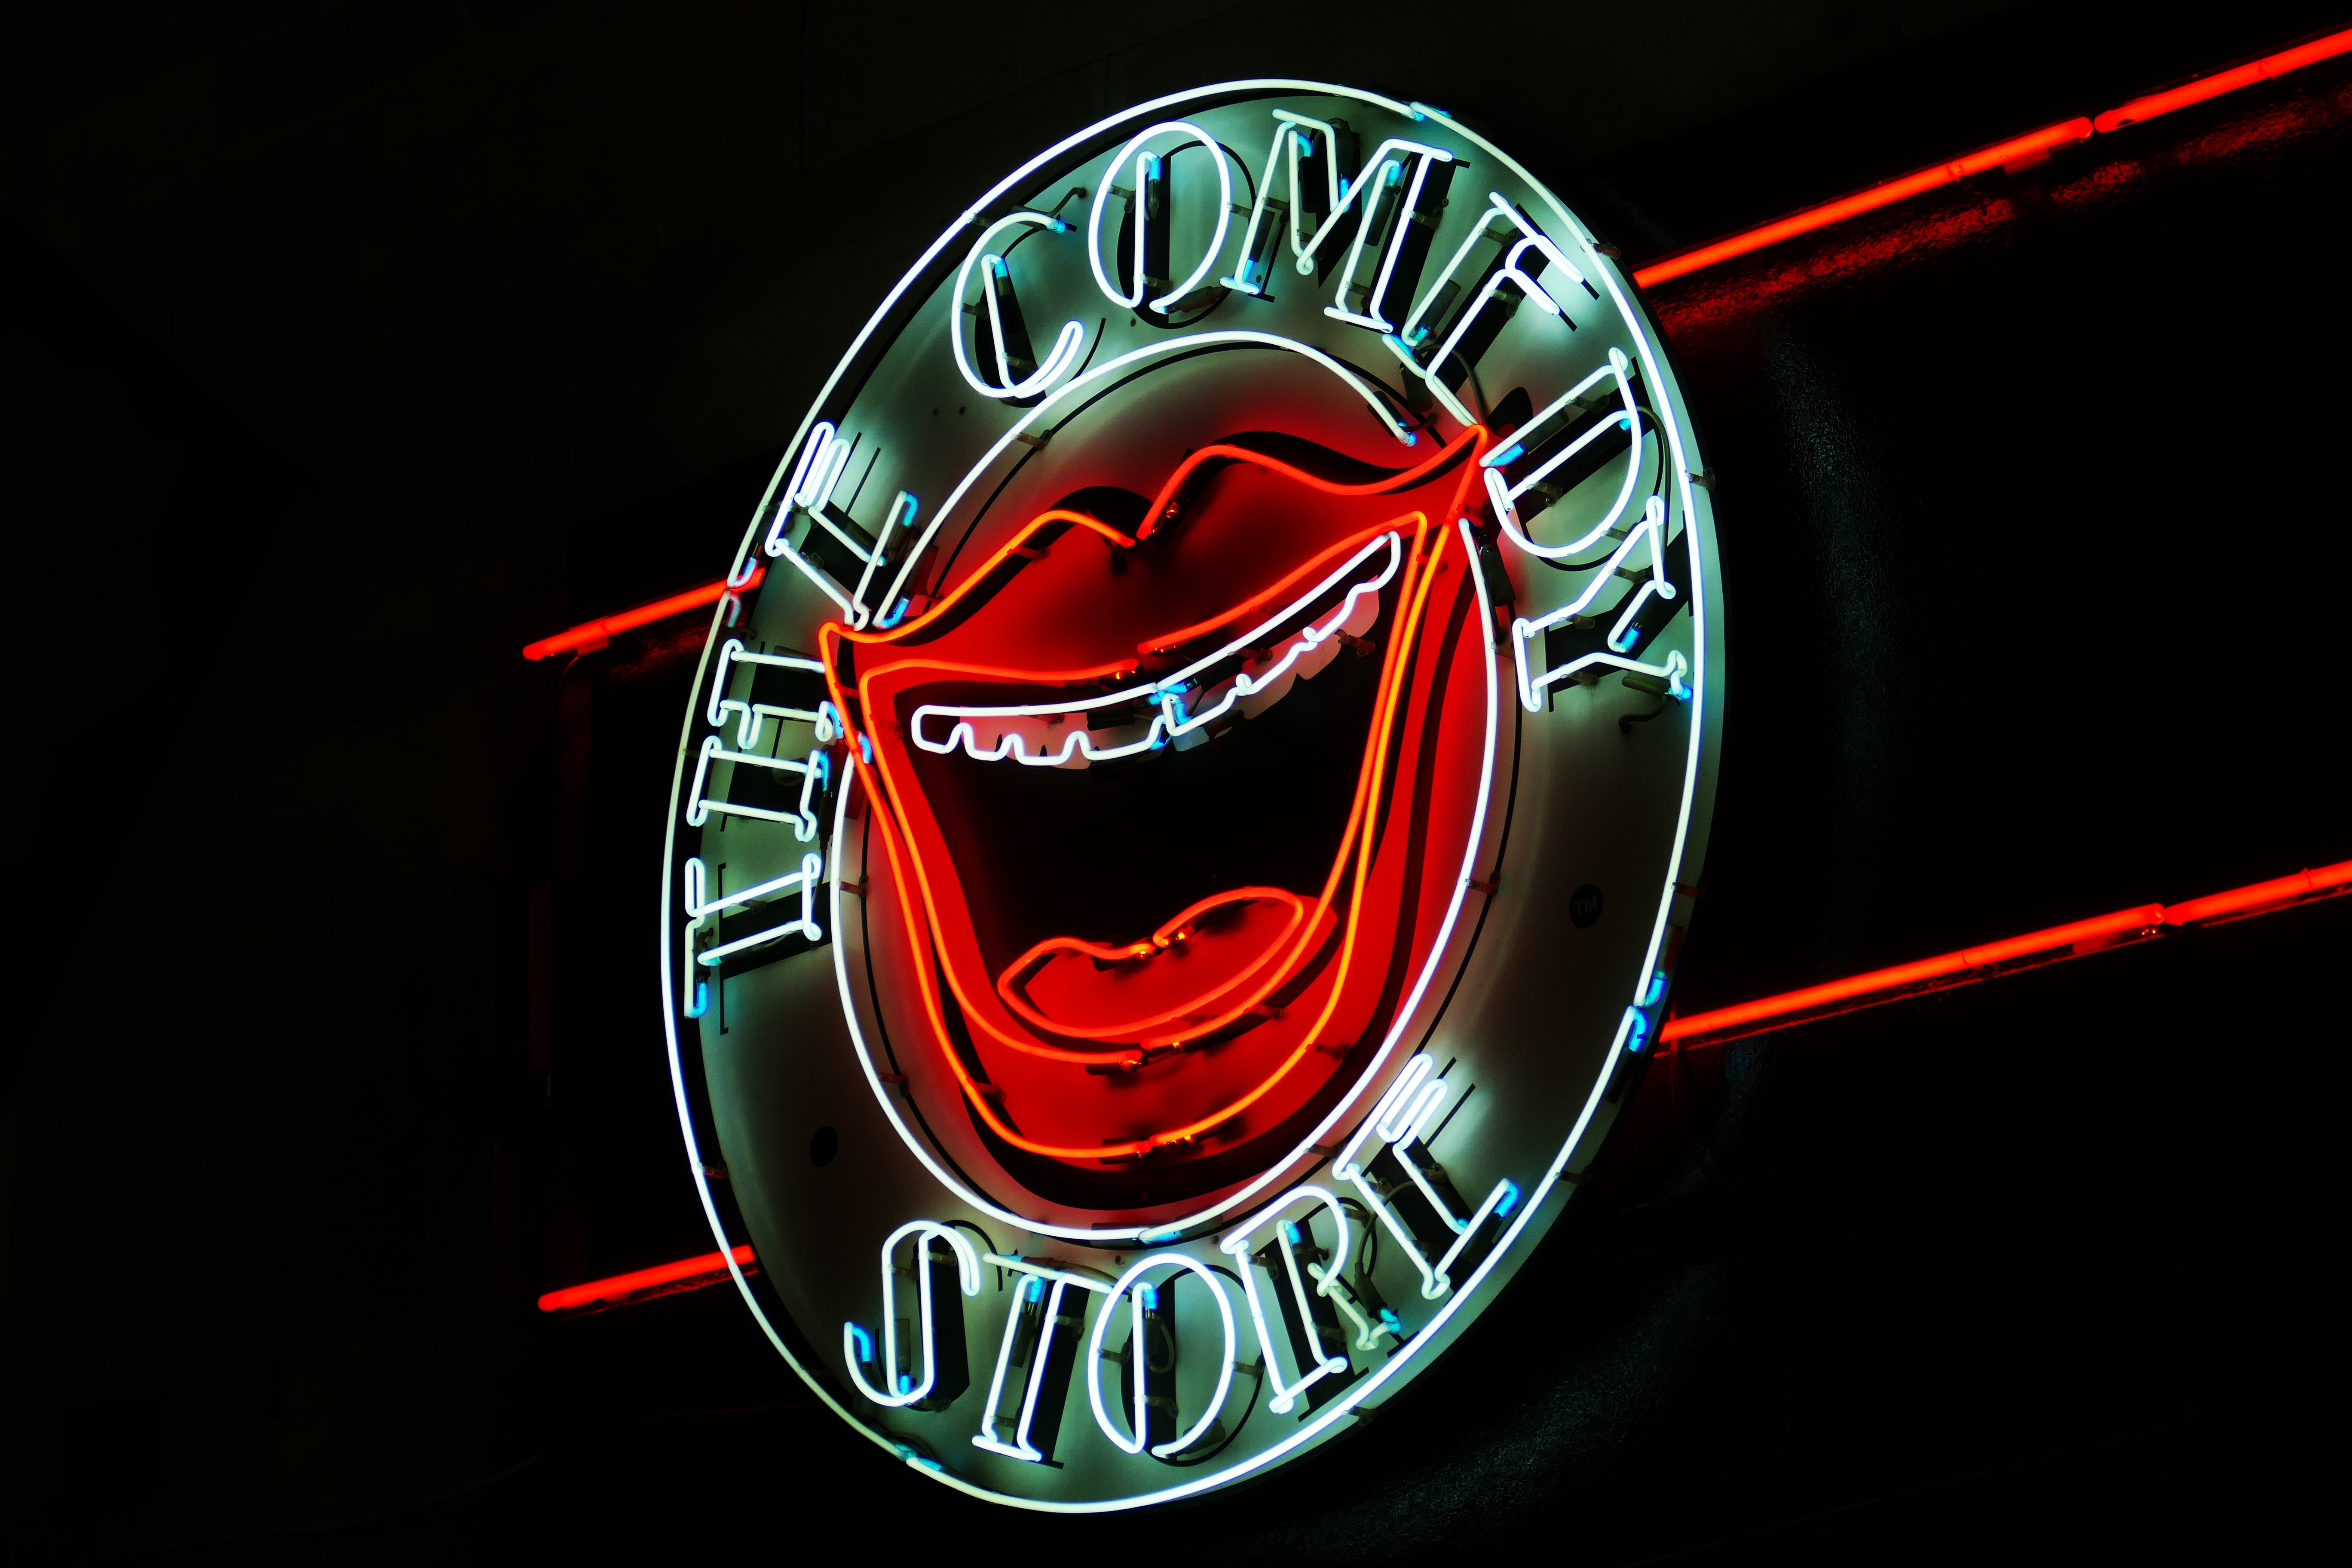 A light up wall decoration with the words The Comedy Store illuminated.